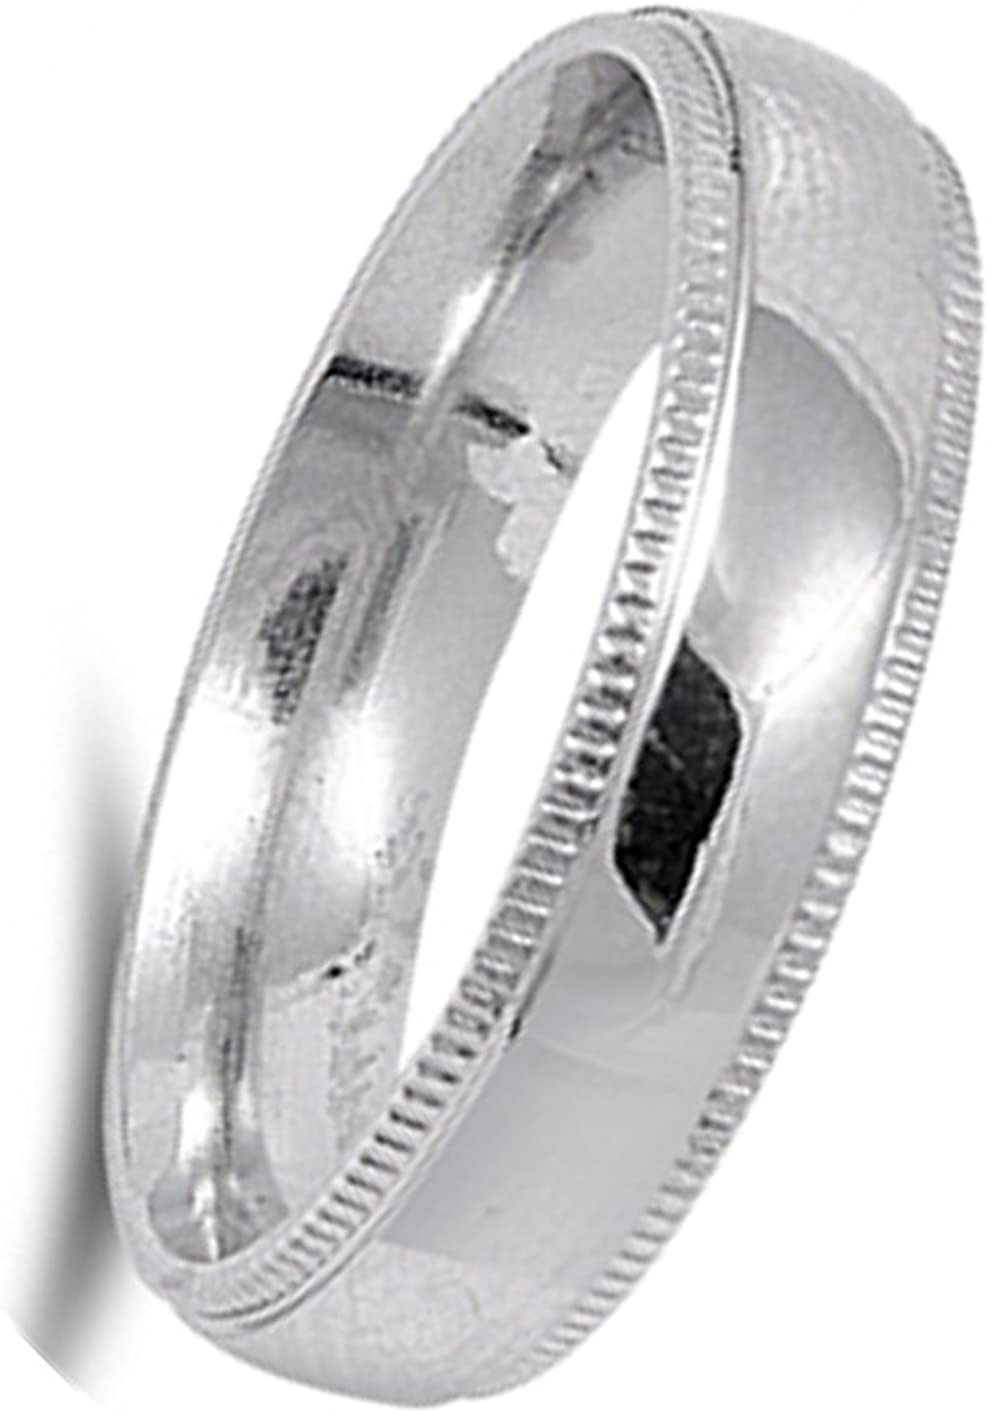 Concave Mens Wedding Band High Polish Ring New 316L Stainless Steel Sizes 6-13